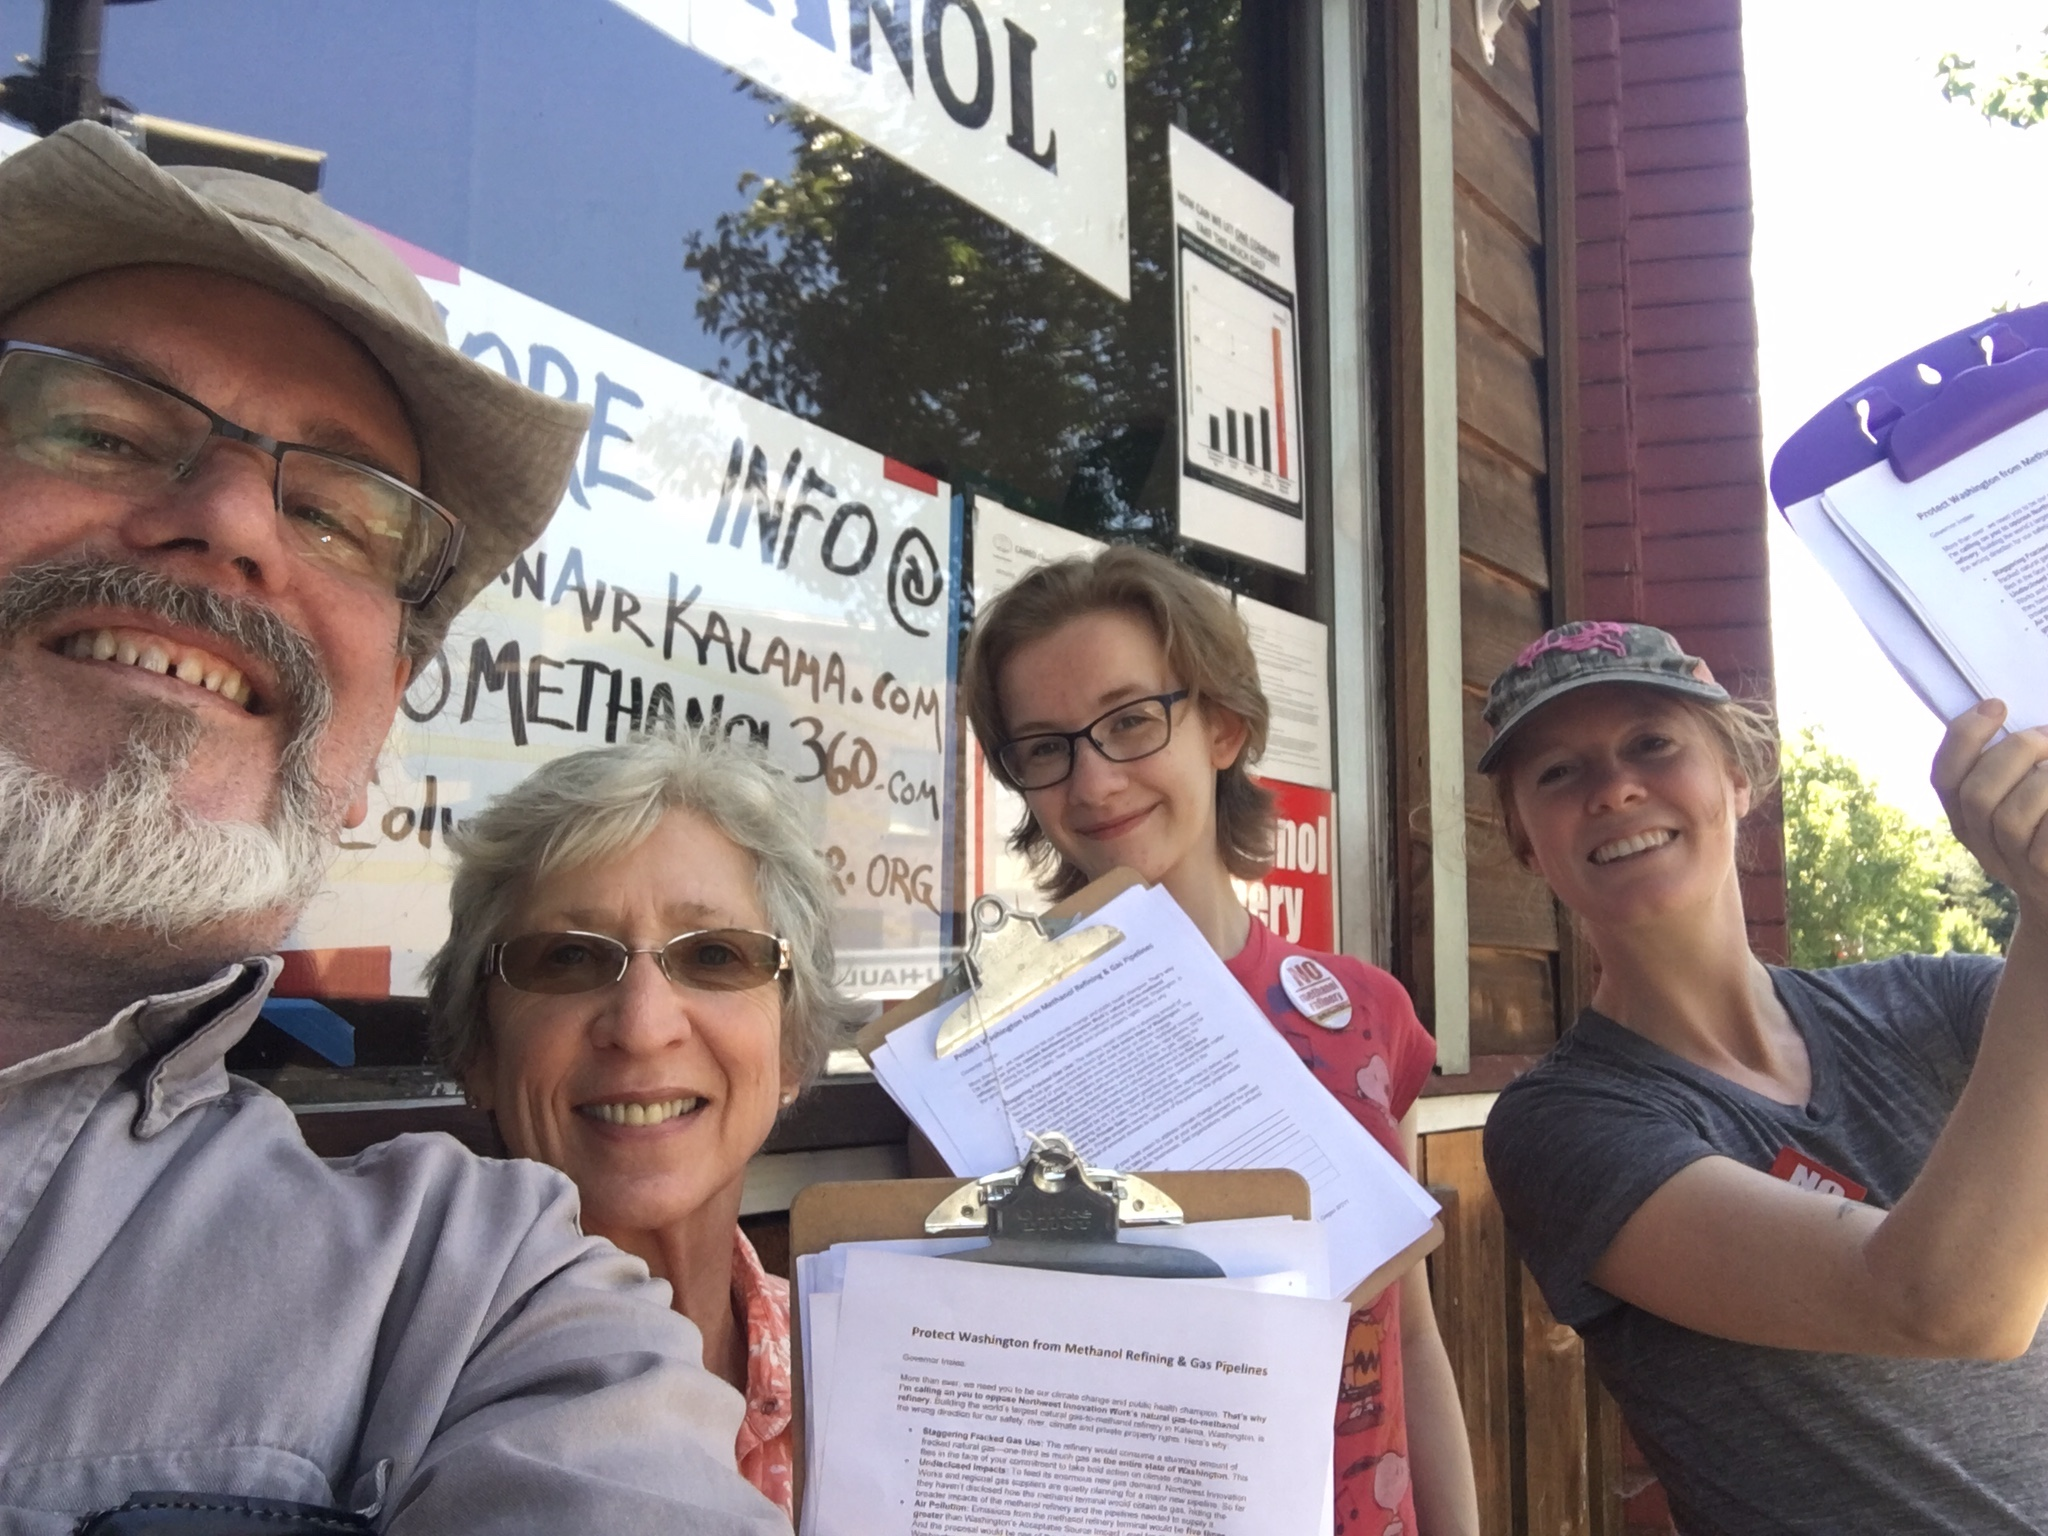 Four productive no methanol activists outside our No Methanol Meeting Hall, summer 2017.